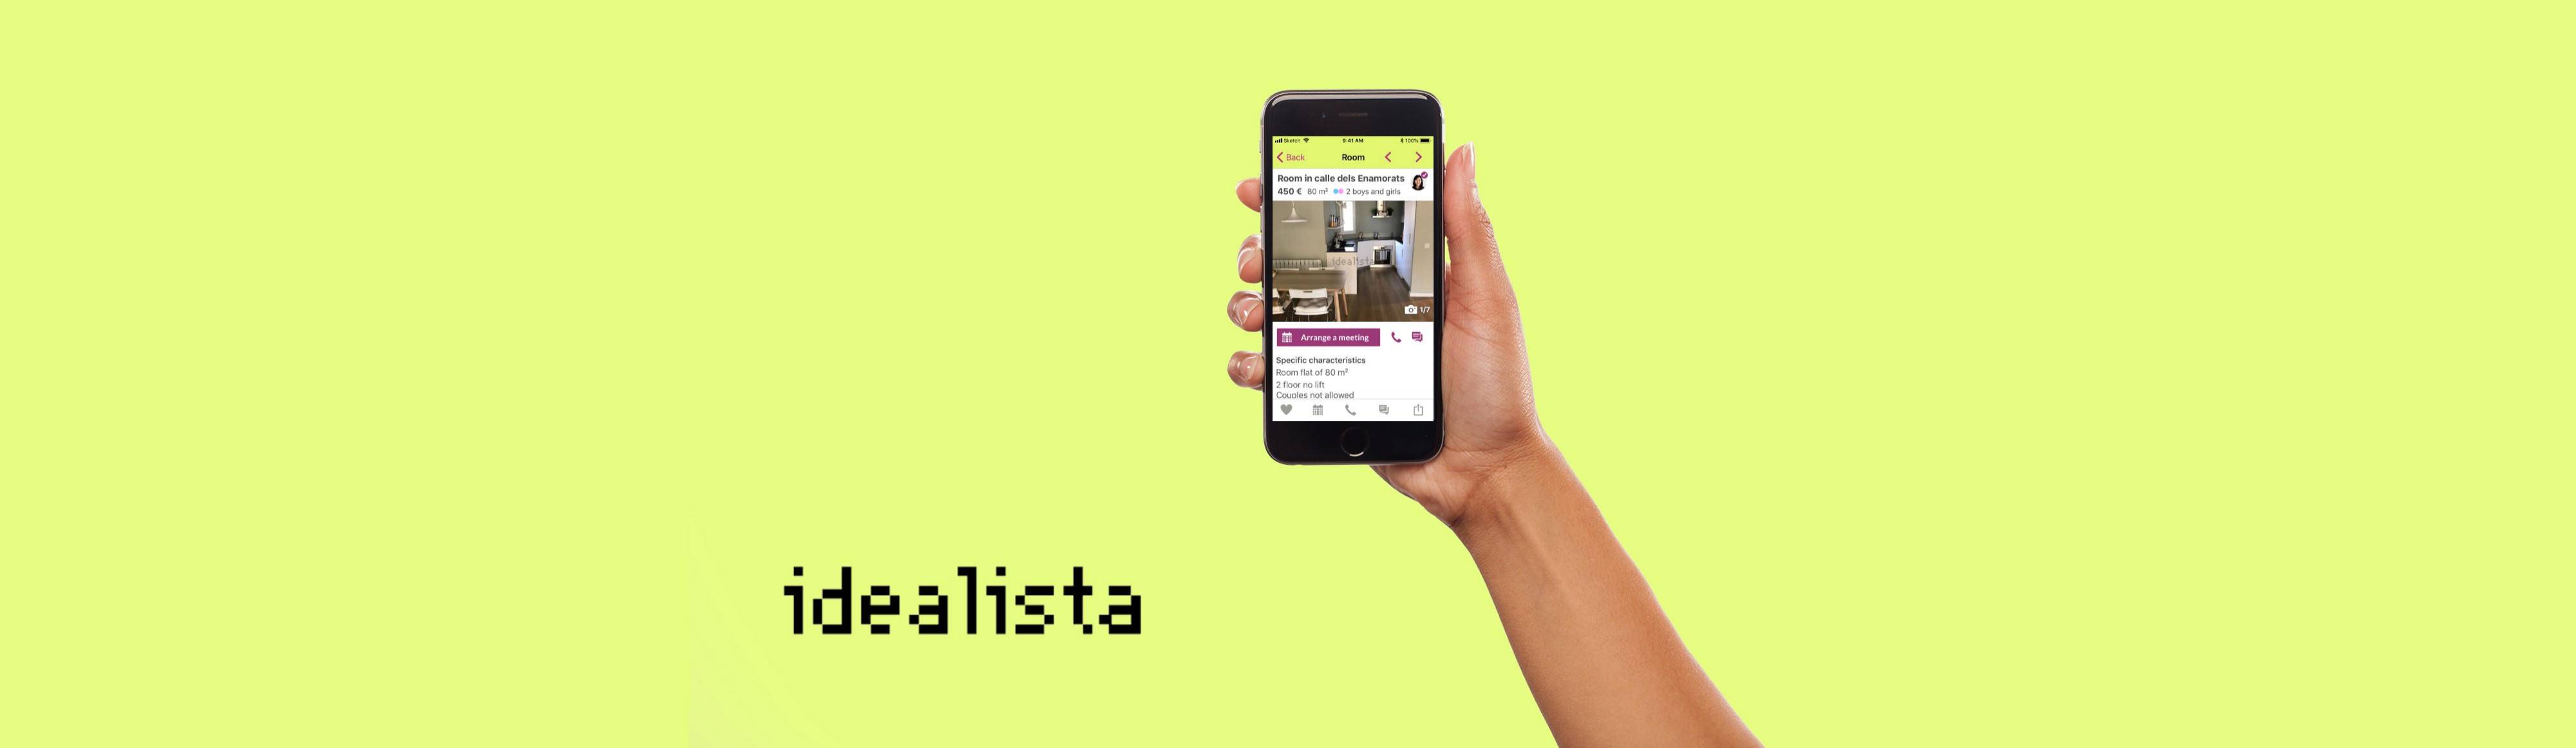 How to add a feature to Idealista com and fix another pain